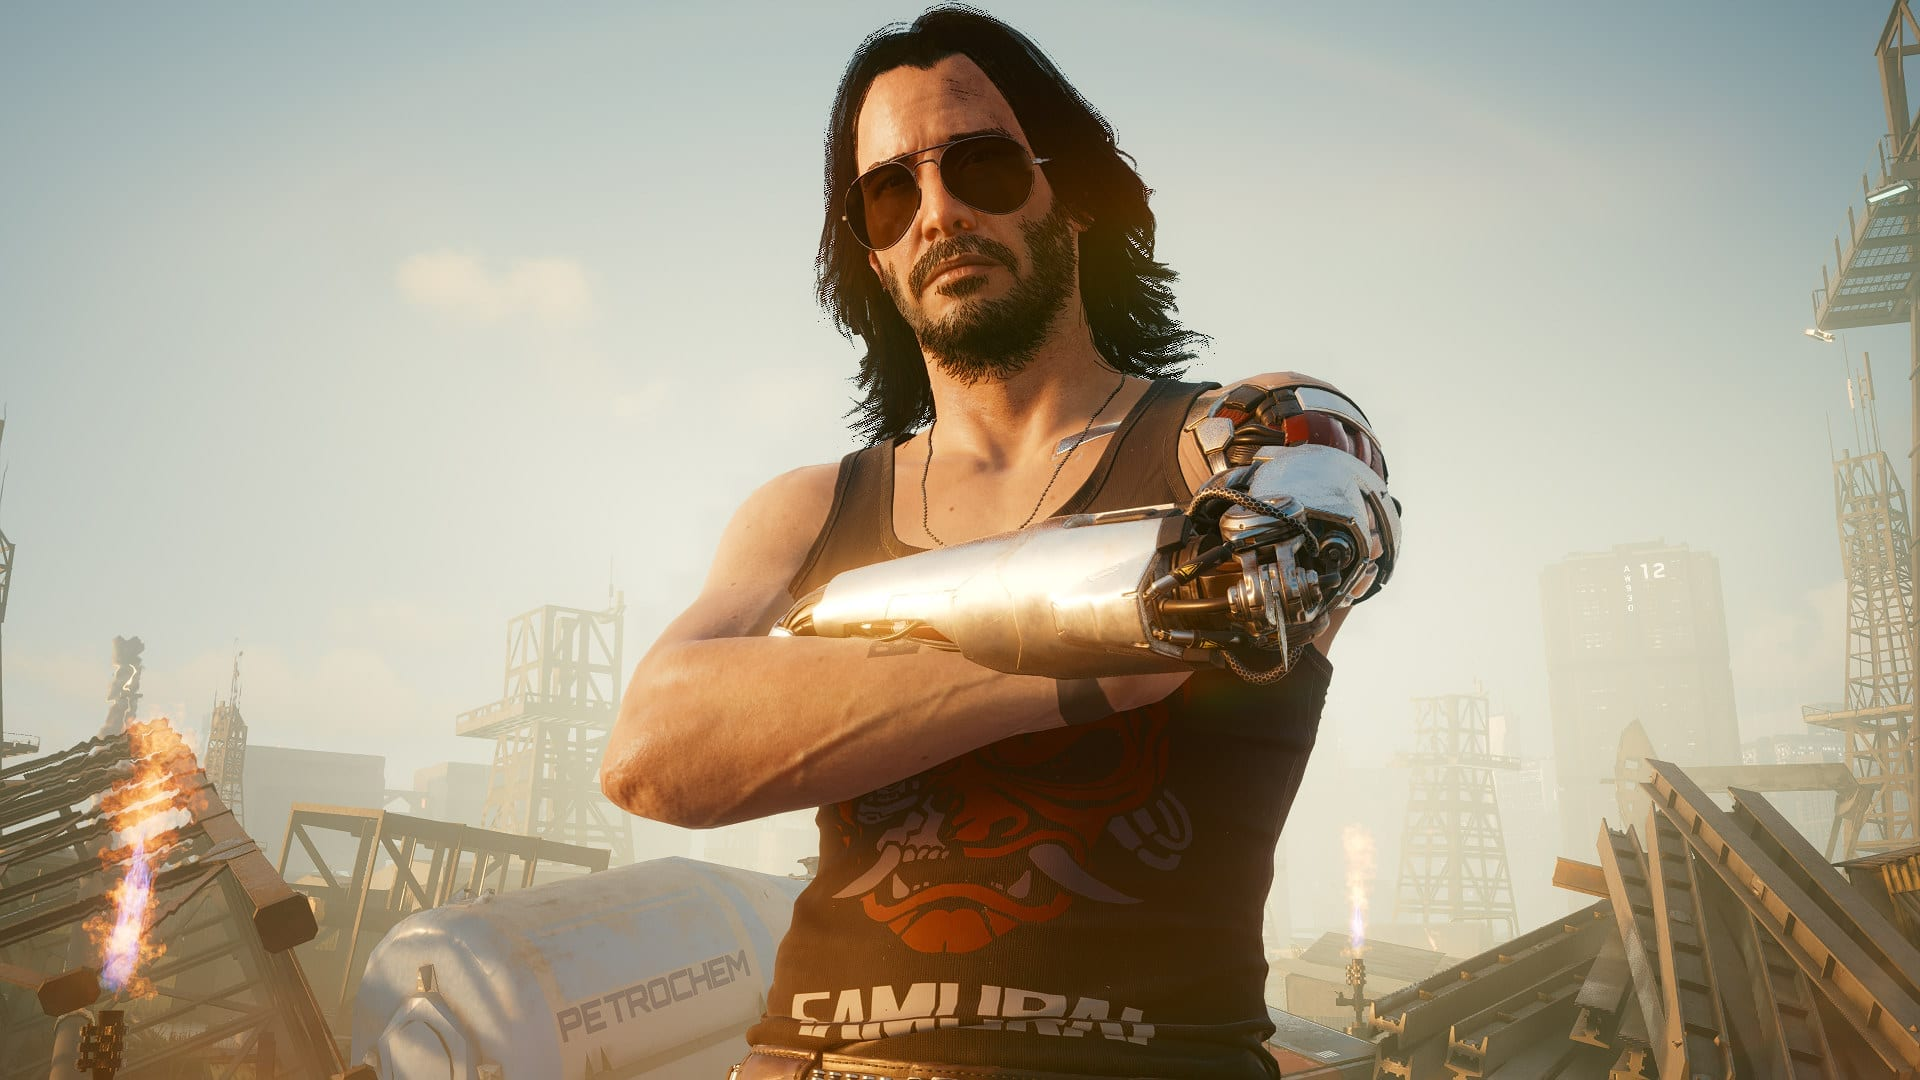 CDPR Is Expecting 4M In Profits, According To Financial Preview